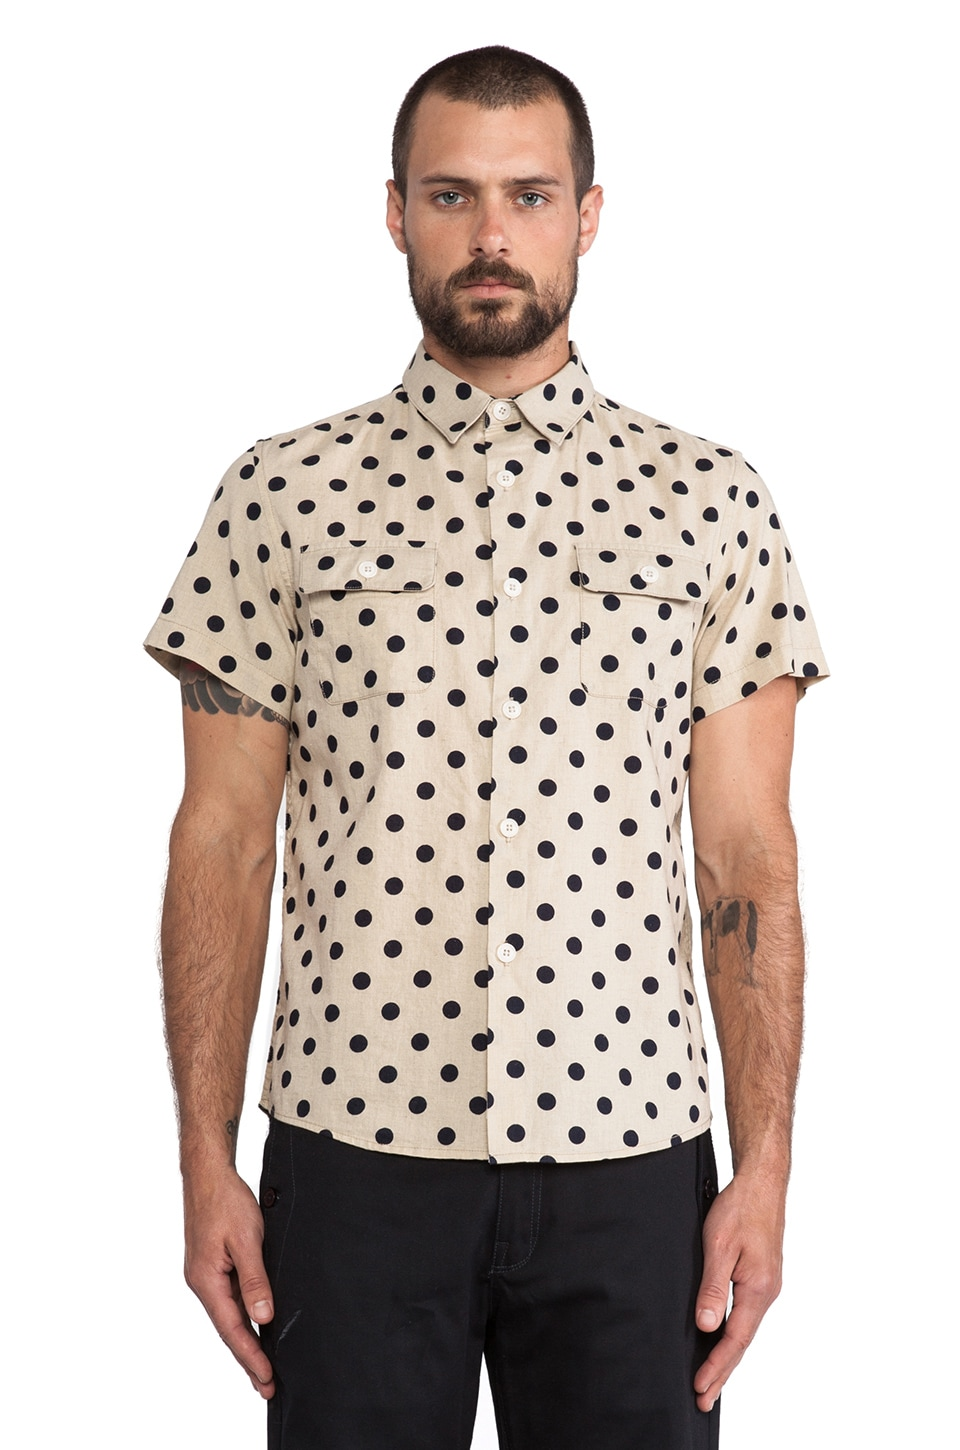 OURS Mid Century Shirt in Natural & Navy Polka Dot